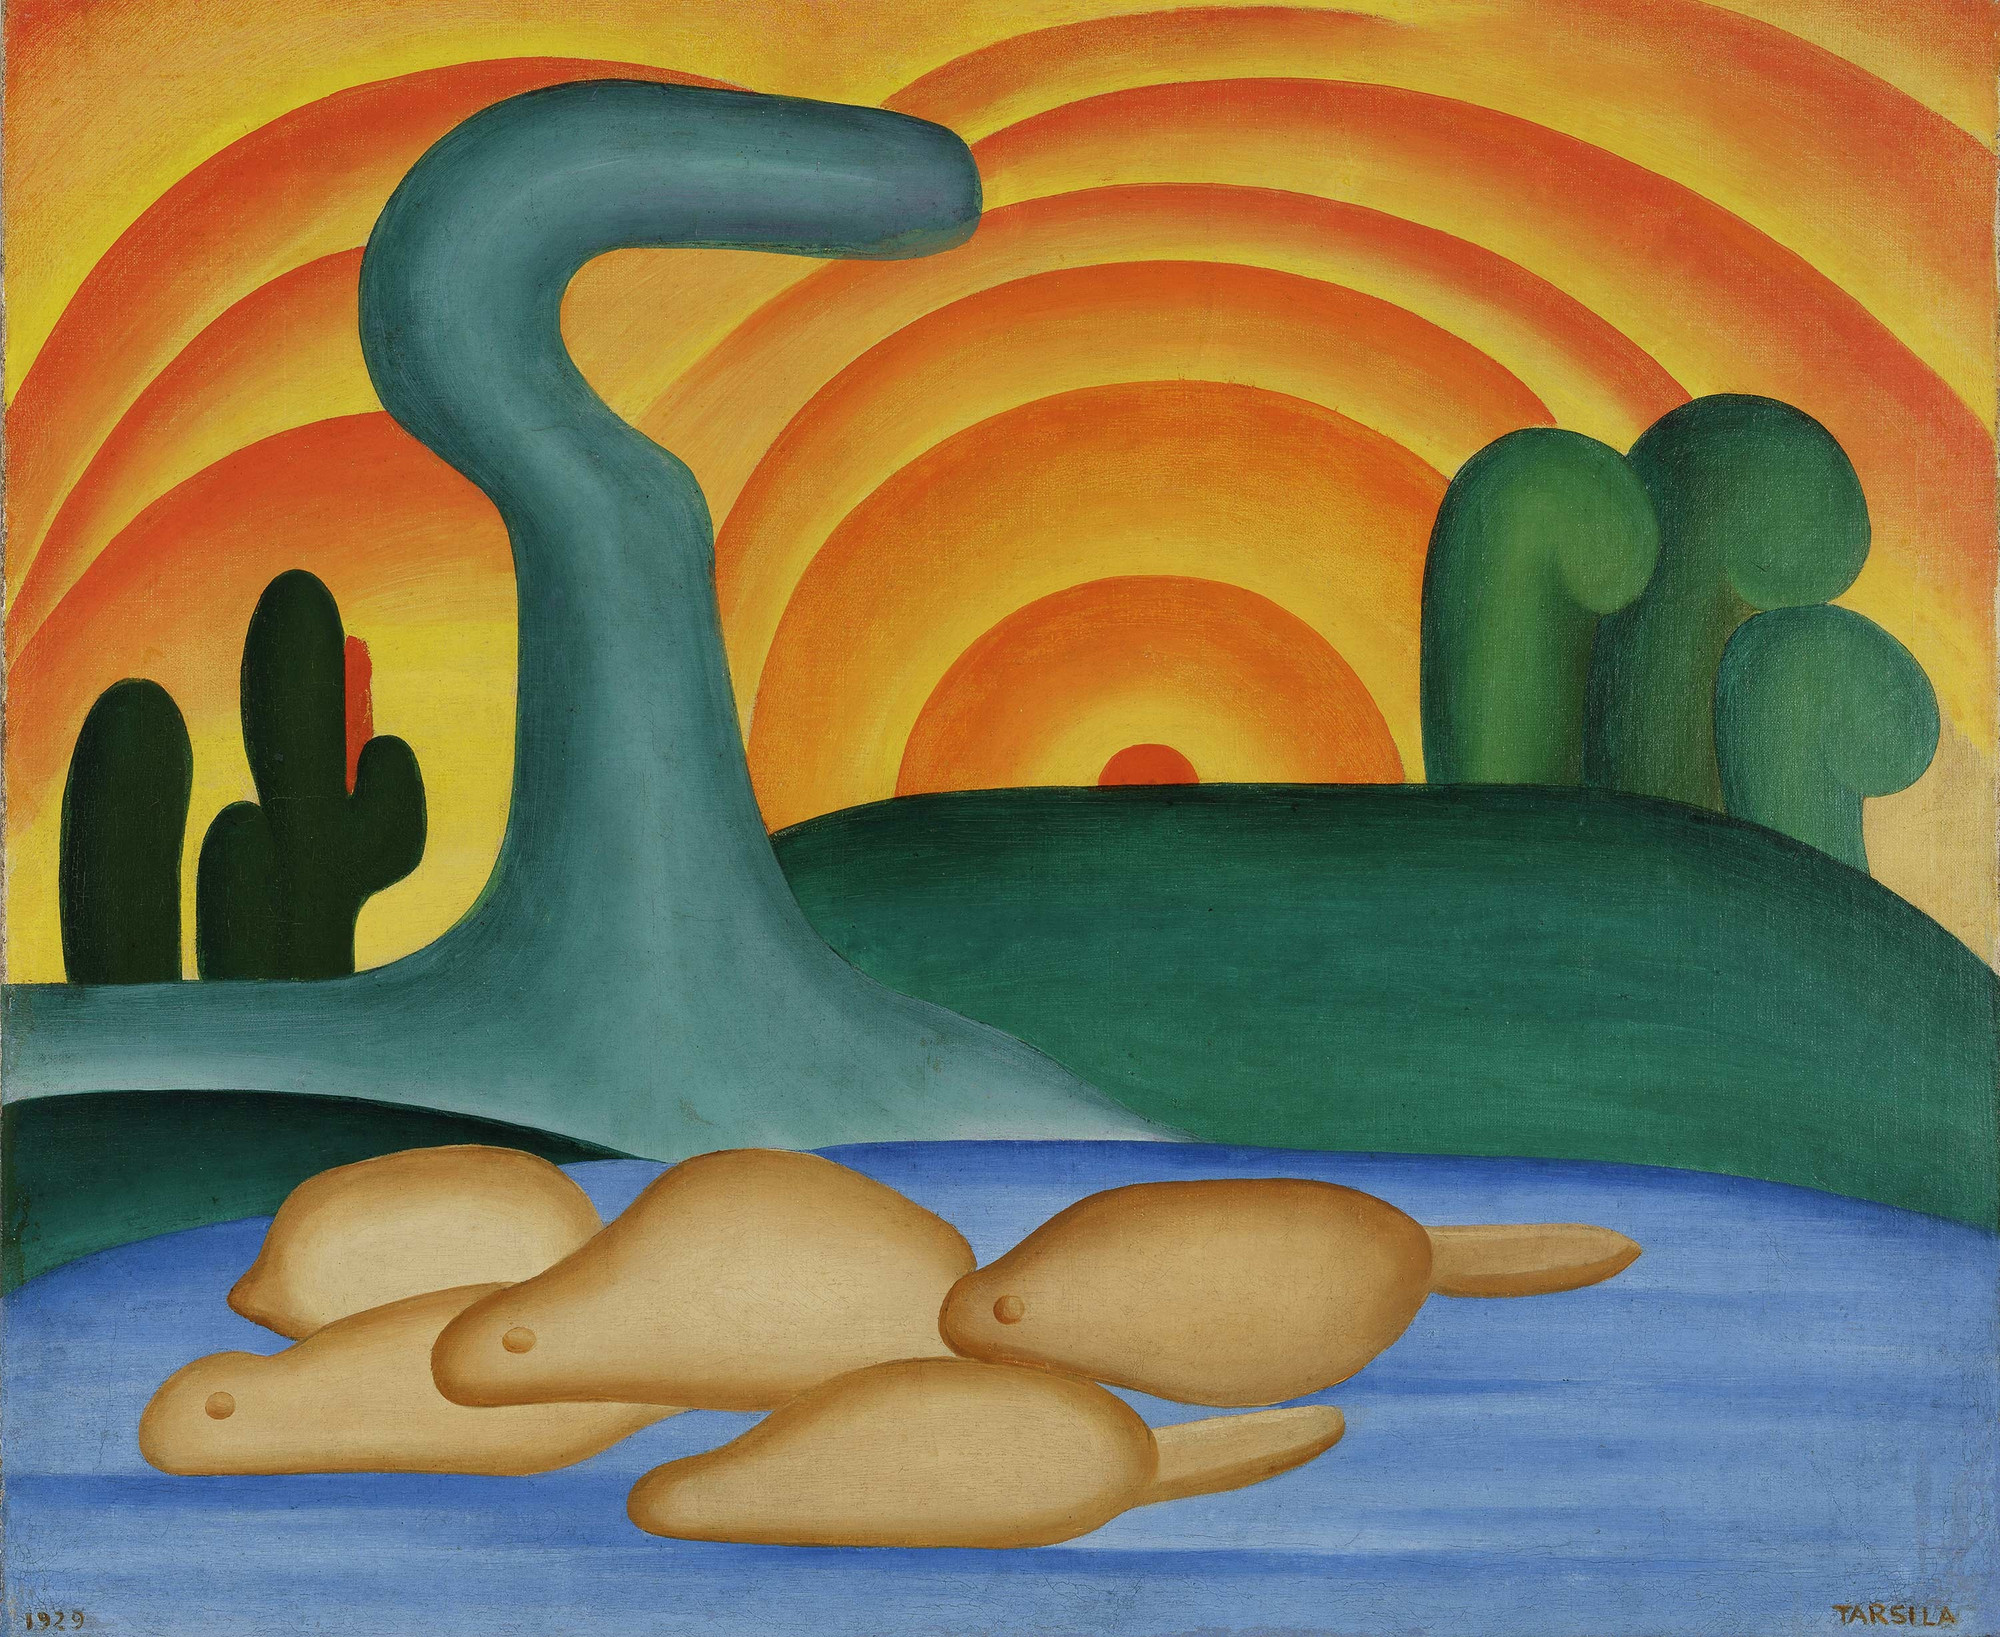 Tarsila do Amaral. Setting Sun (Sol poente), Oil on canvas. 21 1/4 x 25 9/16 in. (54 x 65 cm). Private collection, Rio de Janeiro © Tarsila do Amaral Licenciamentos